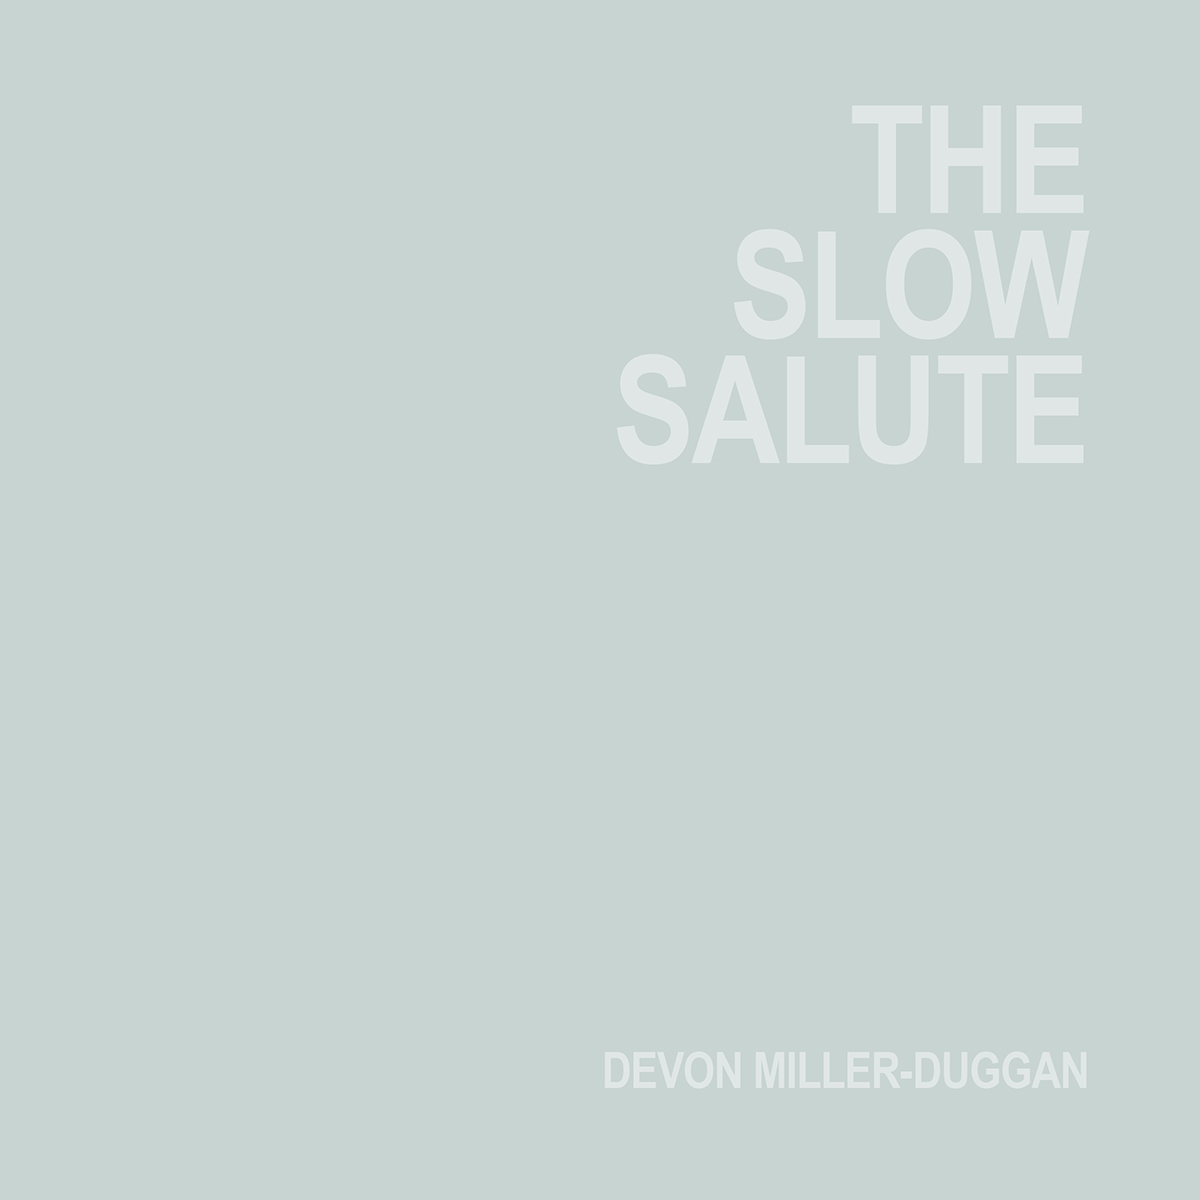 The Slow Salute